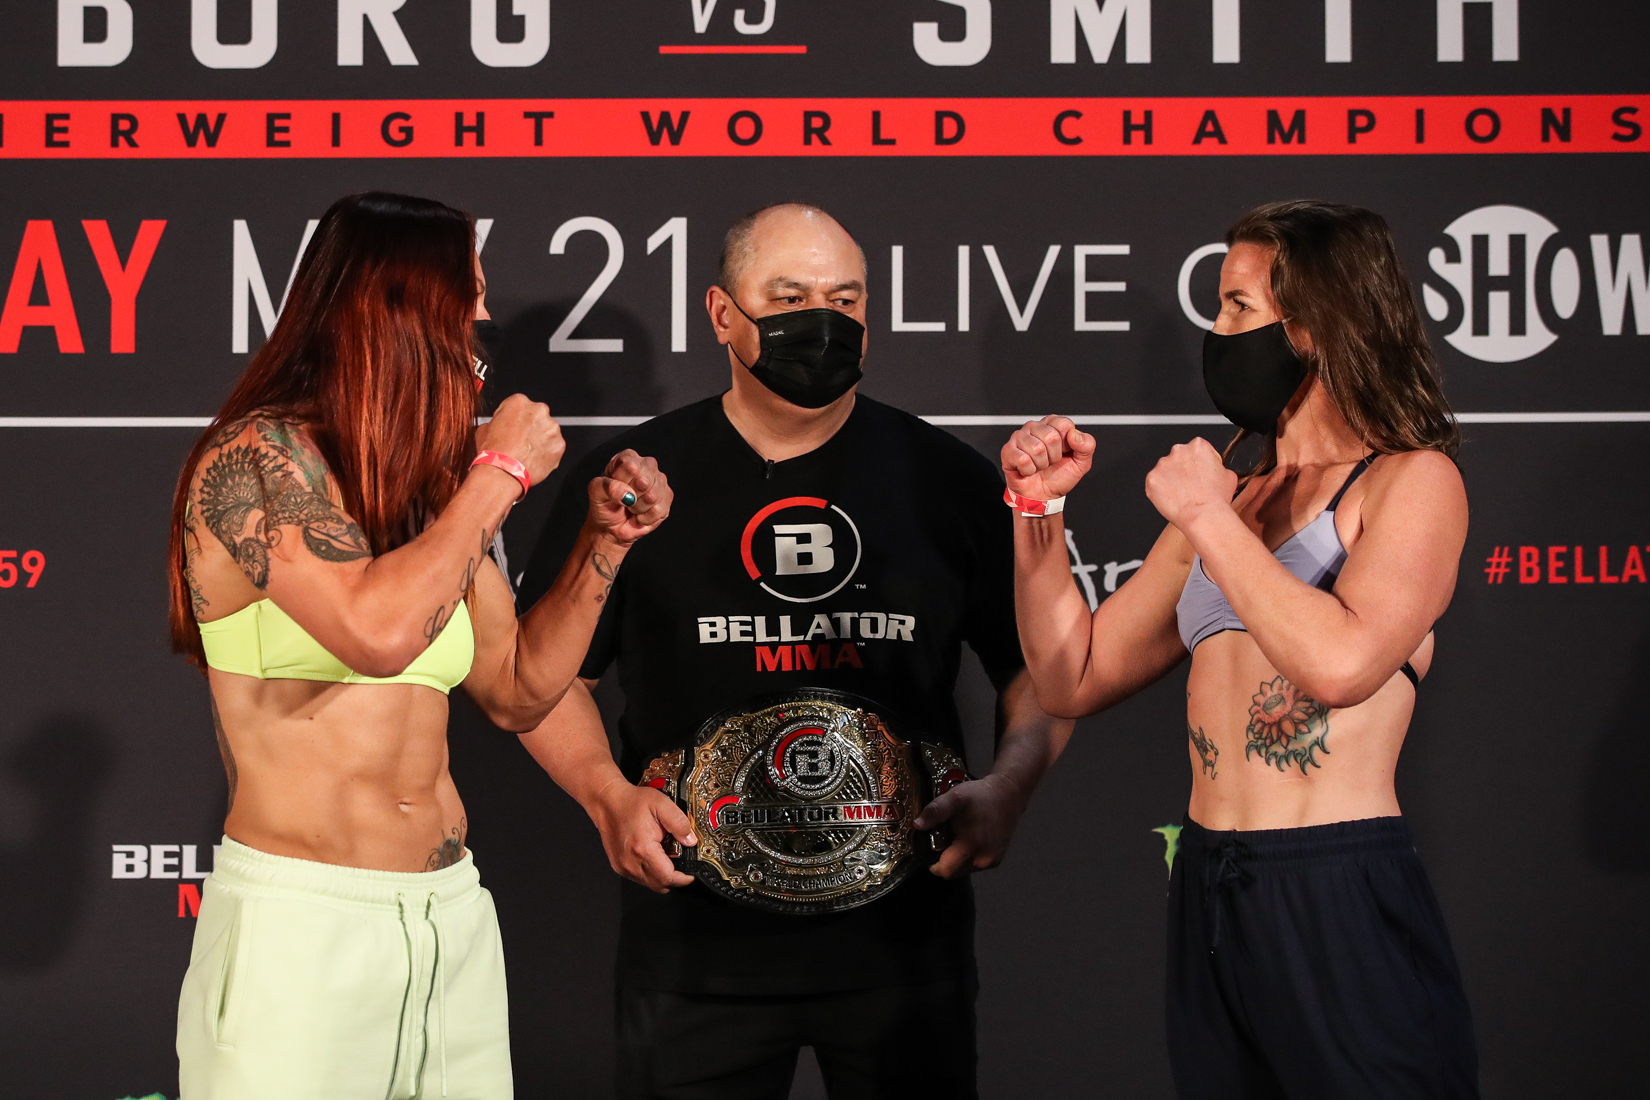 Full Weigh-In Results & Photos for BELLATOR 259: Cyborg vs. Smith 2